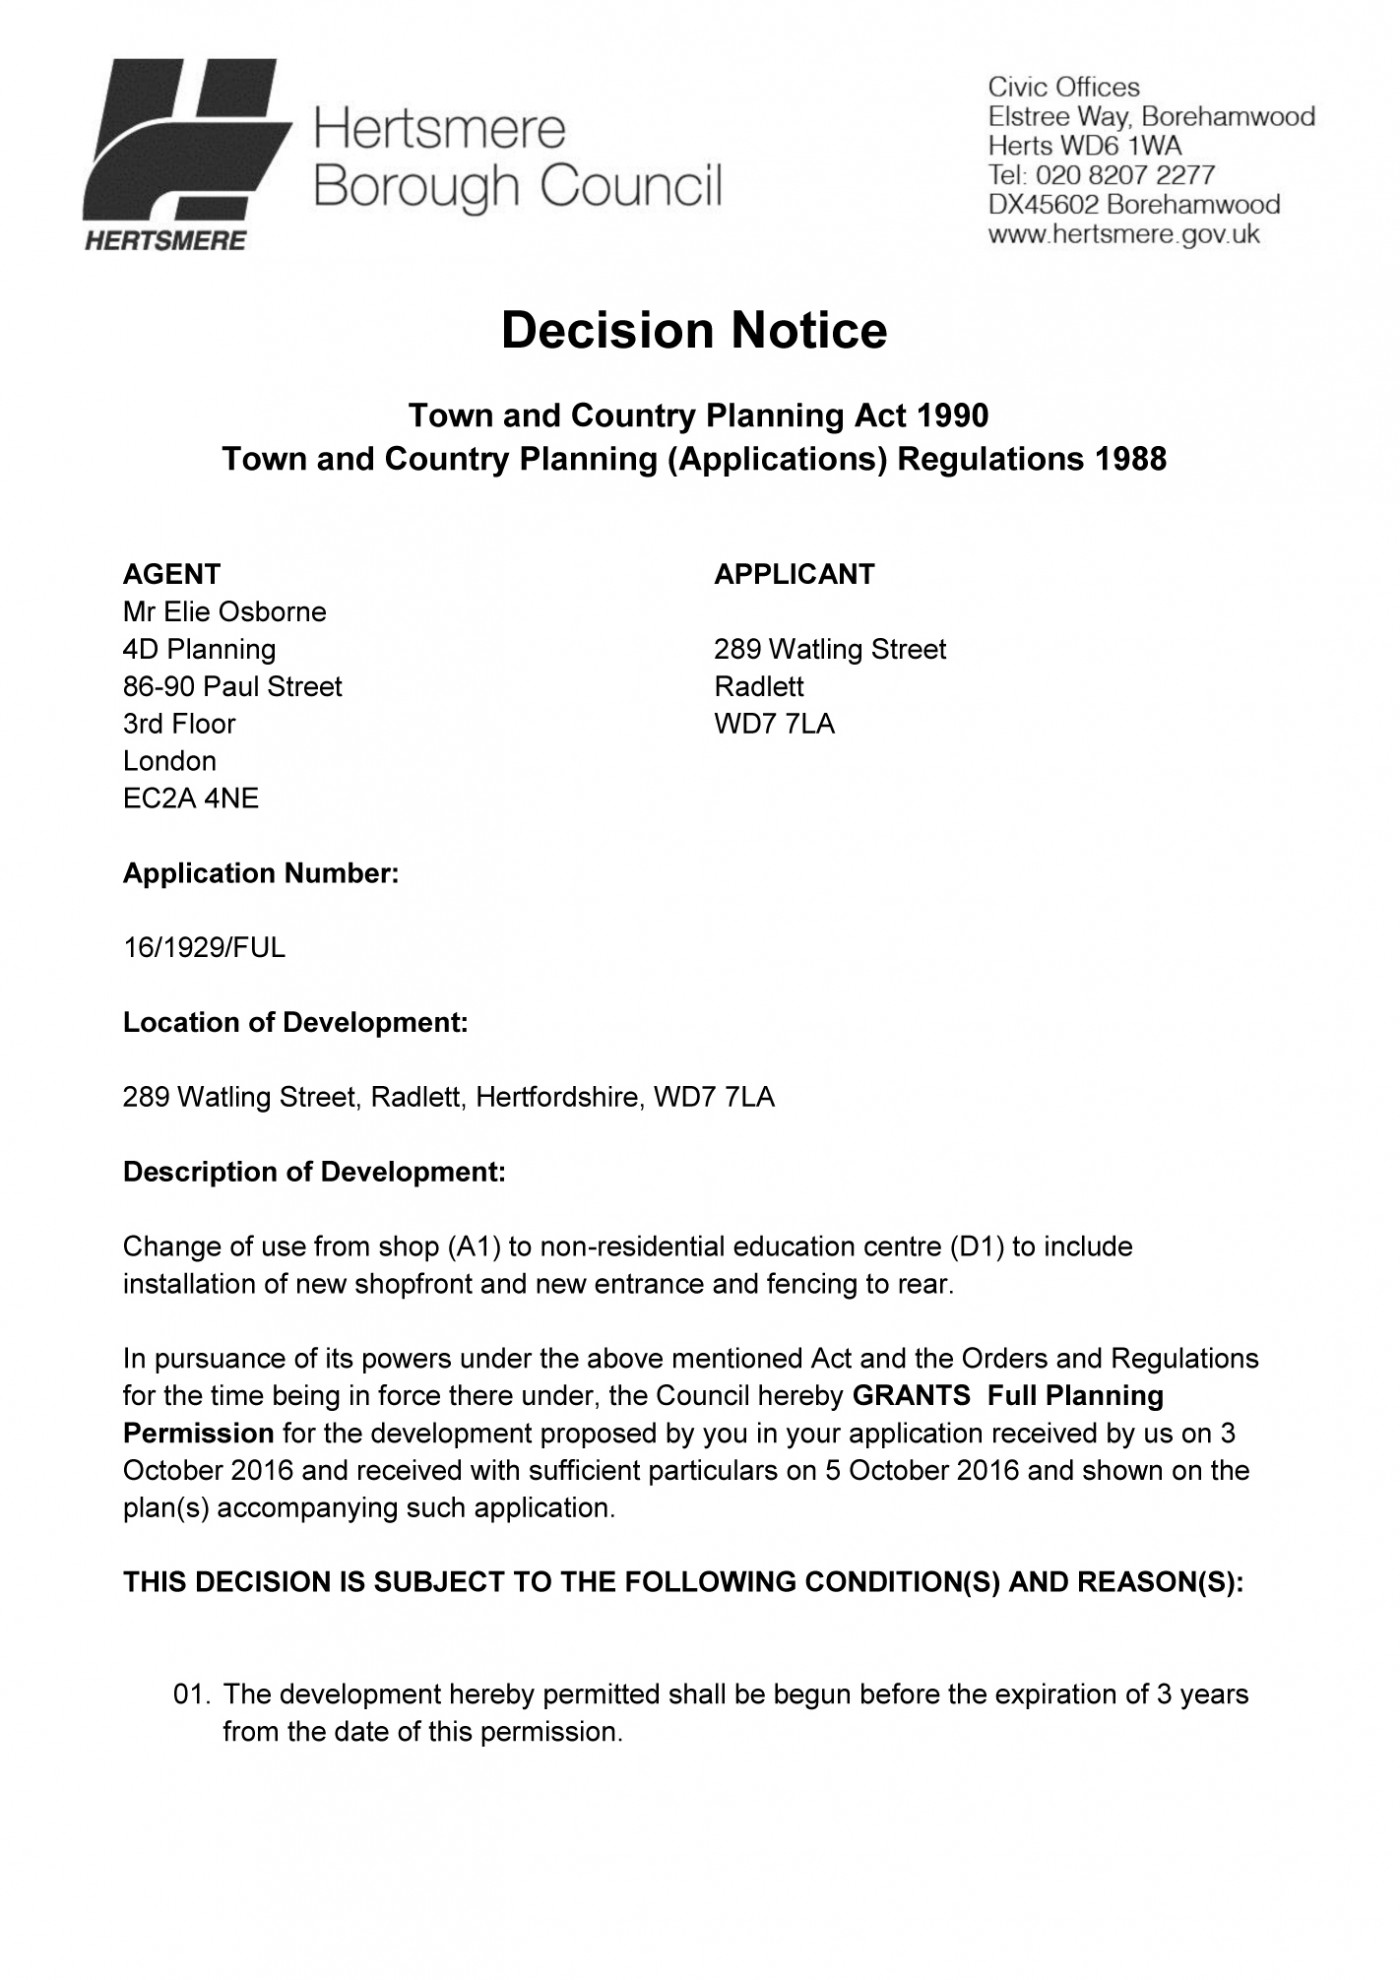 decision notice - Hertsmere